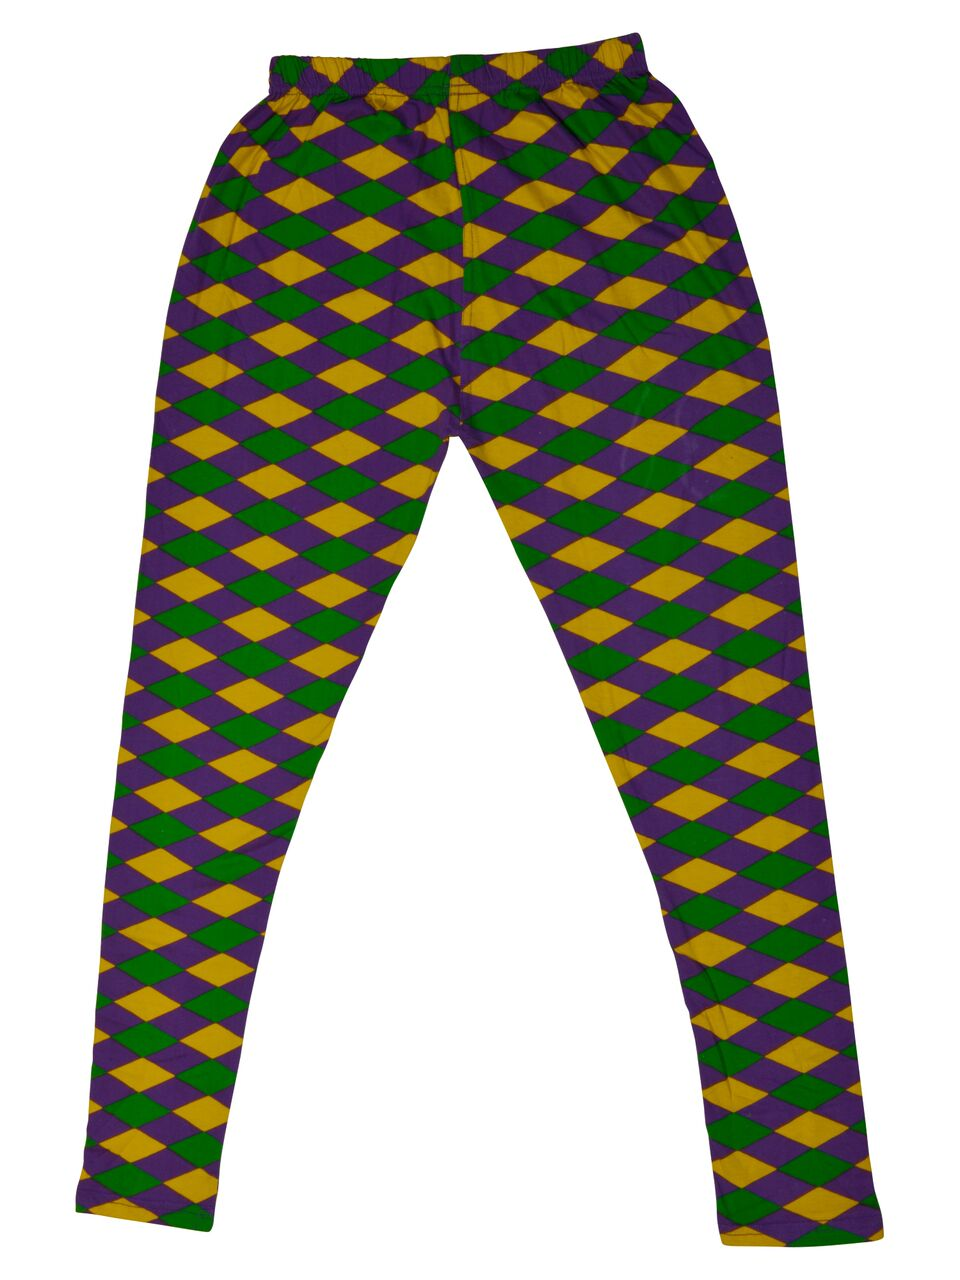 Purple Green Gold Harlequin Print Kids Tights/Leggings